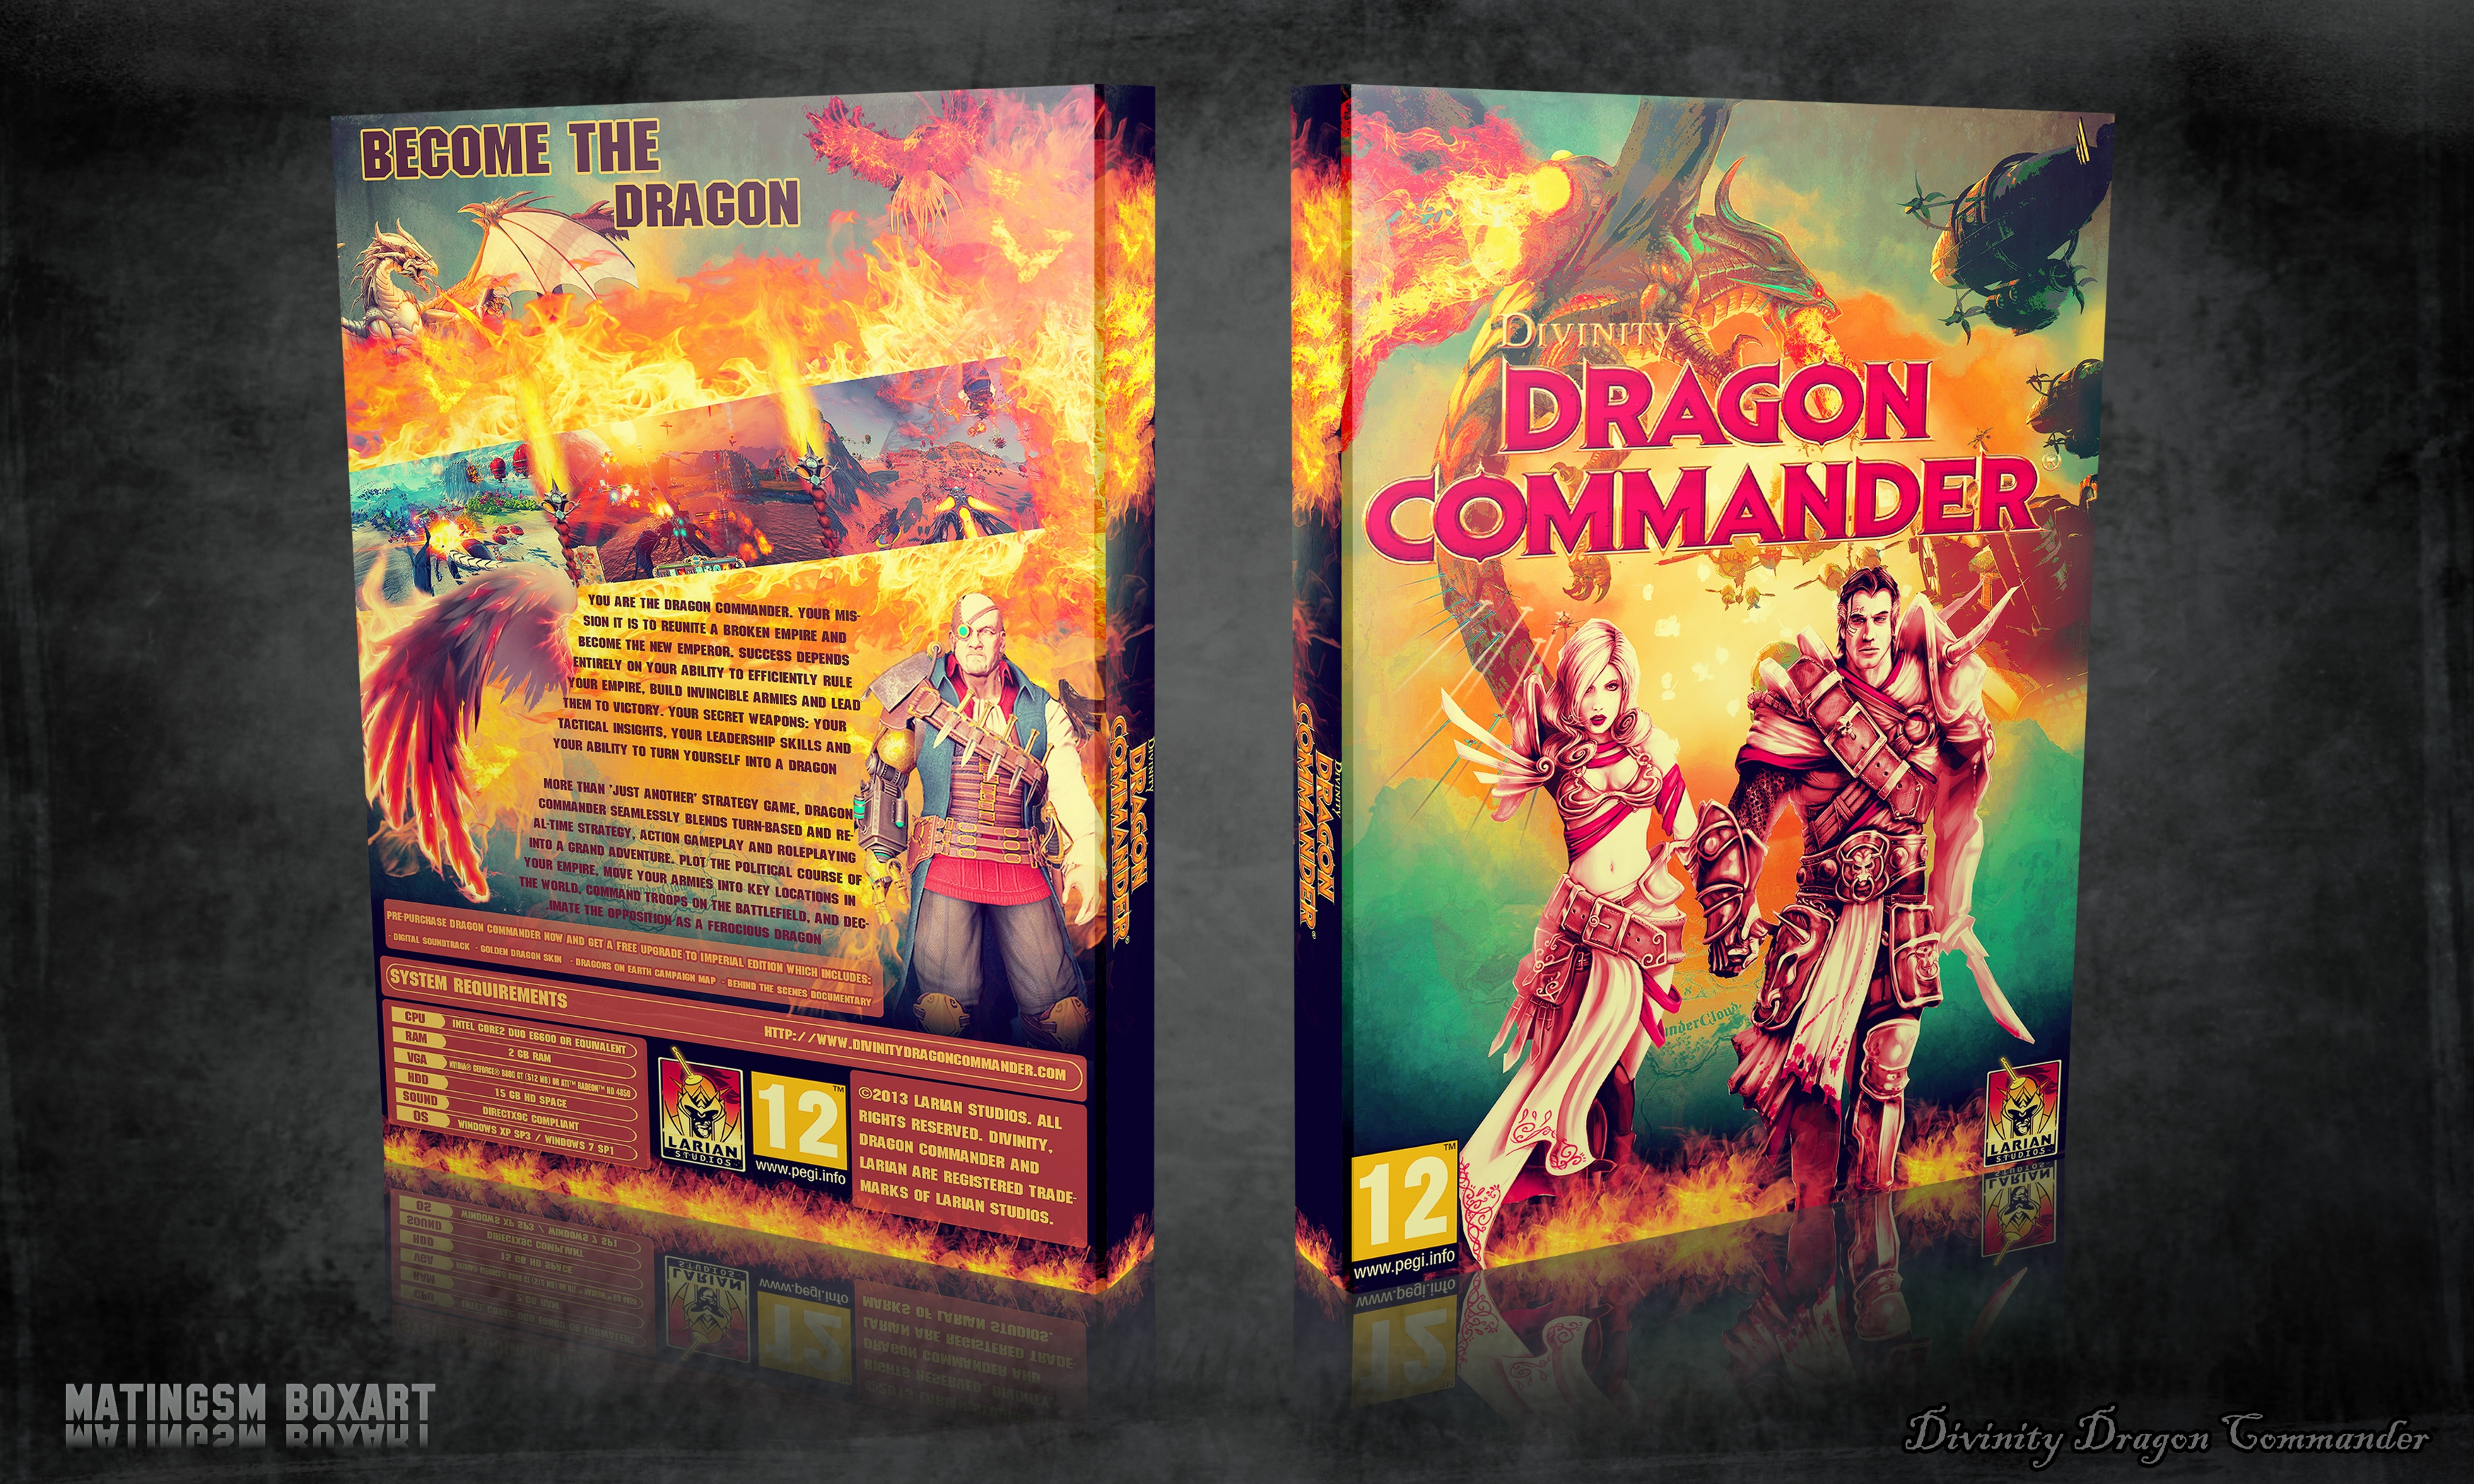 Divinity Dragon Commander box cover